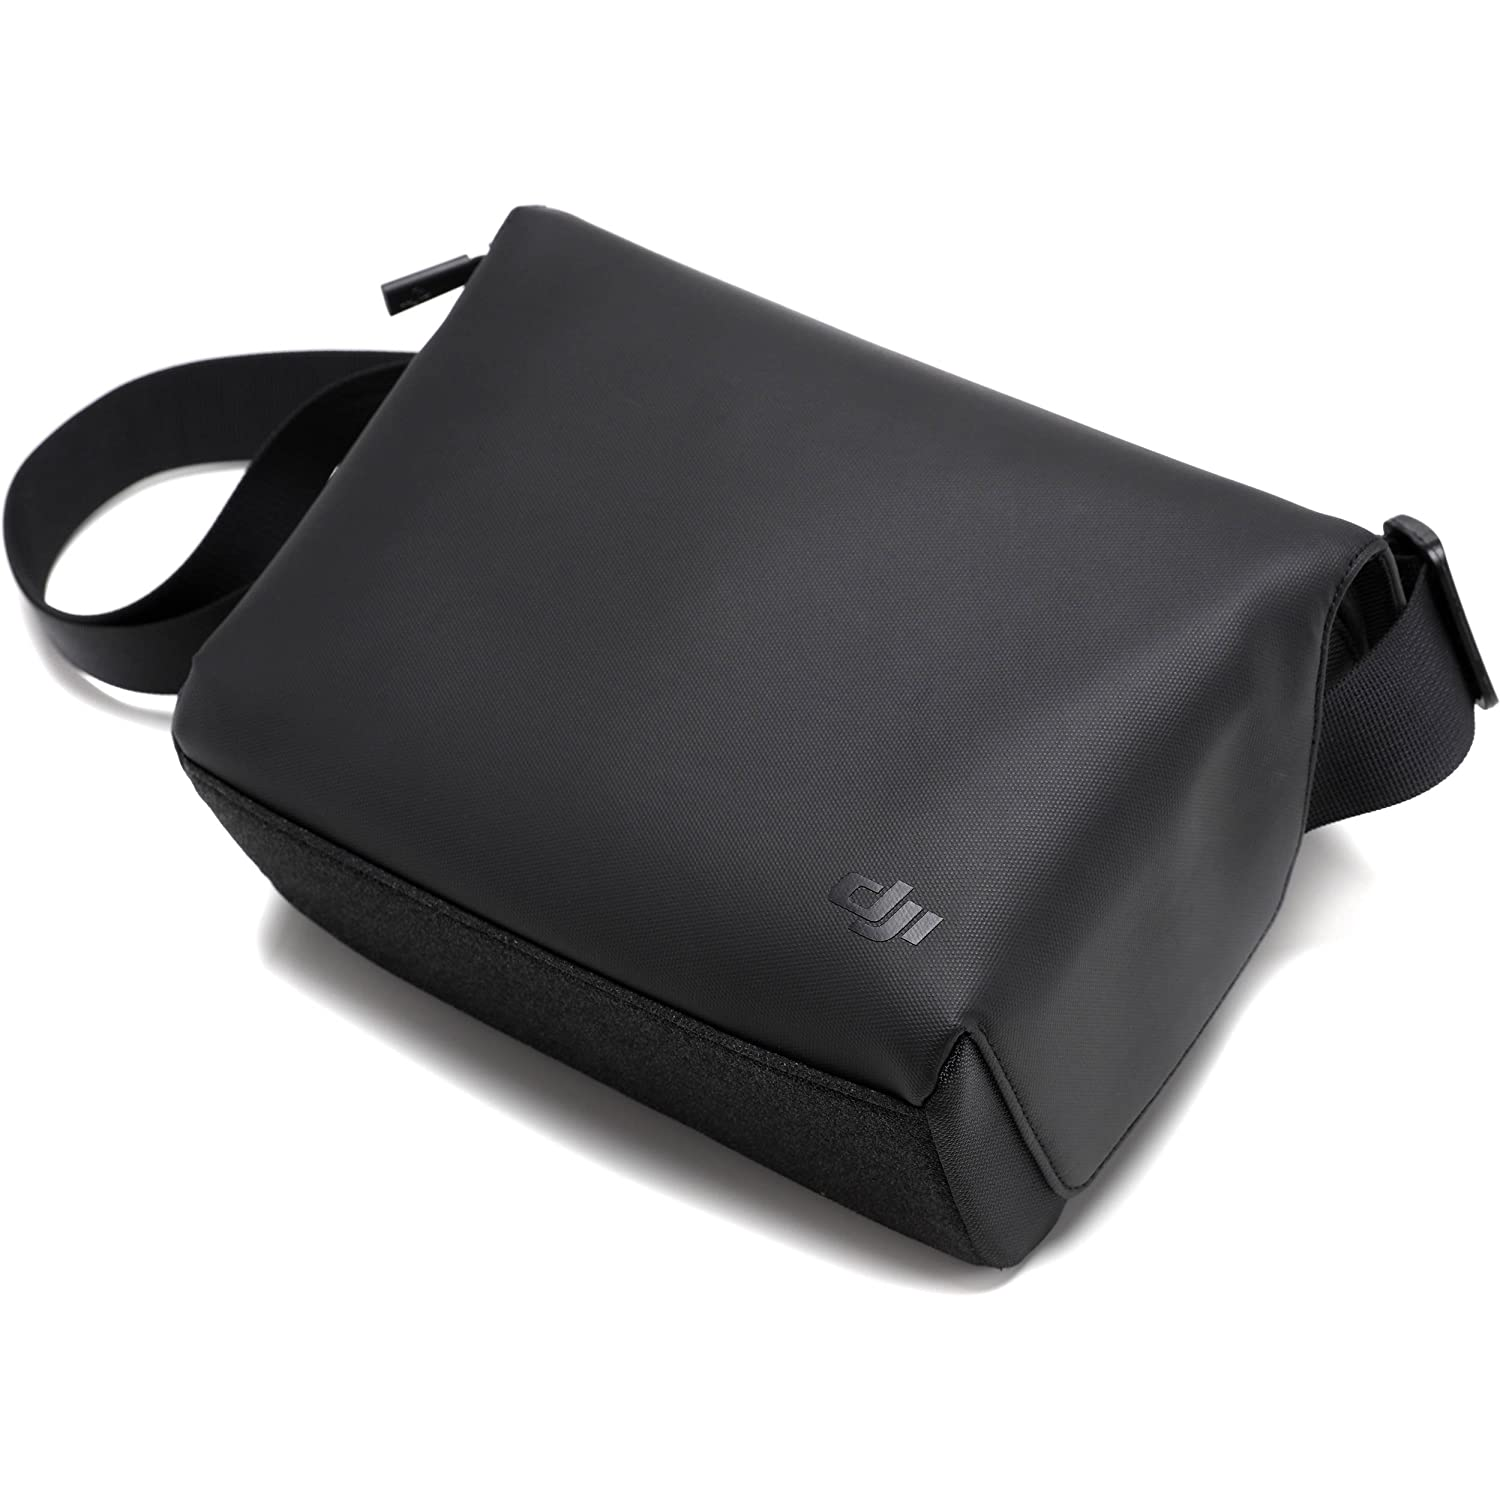 DJI Shoulder Bag for Spark